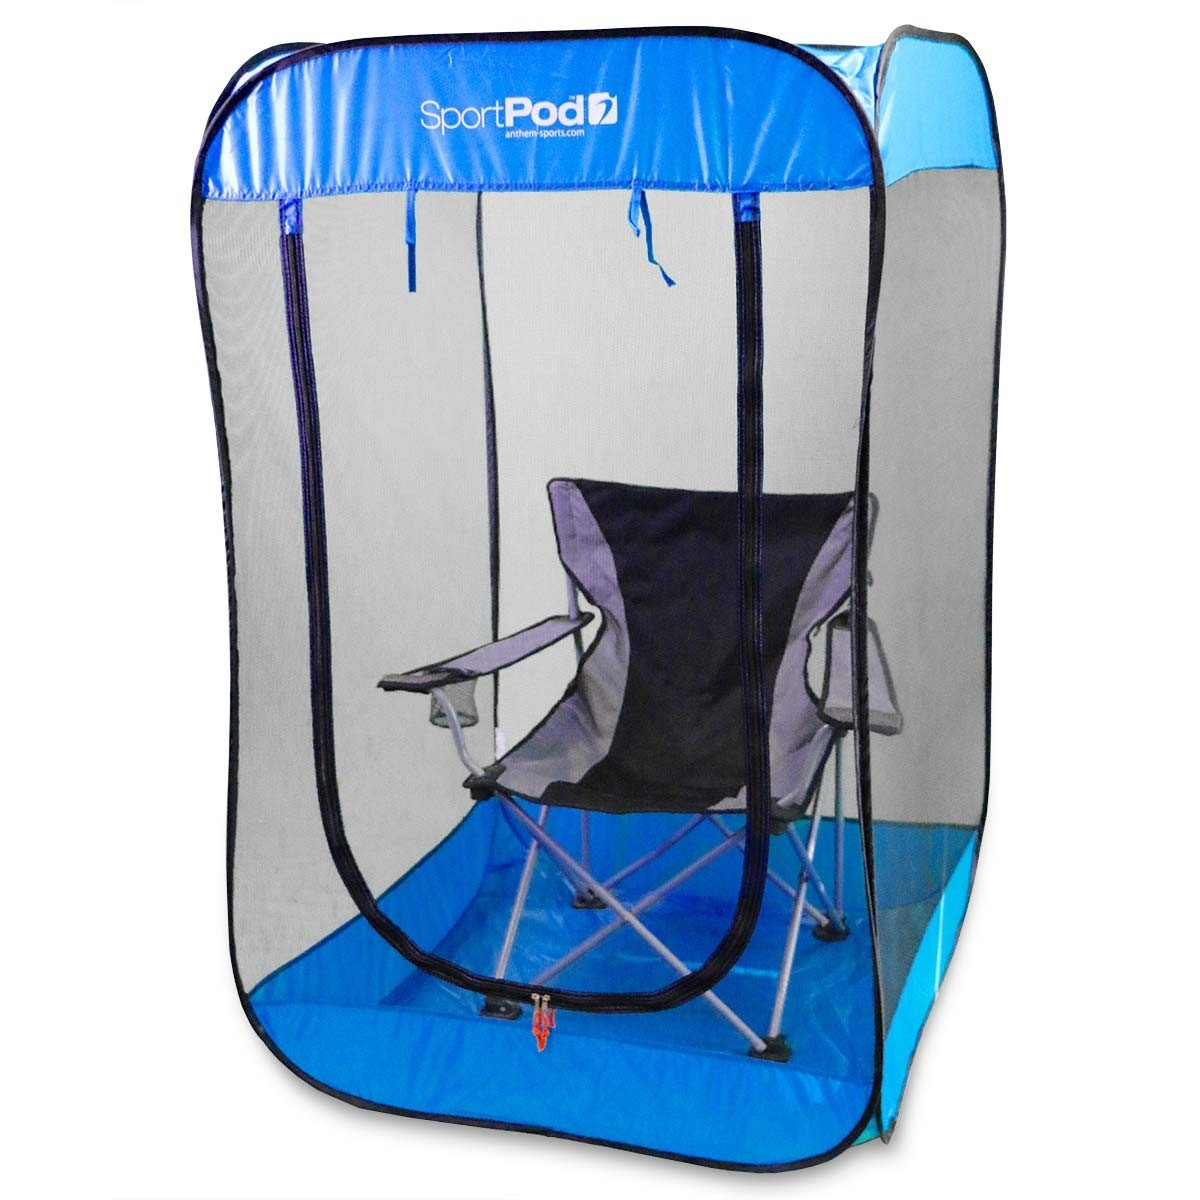 Bugpod Undercover Sportpod Pop Up Insect Screen Tent